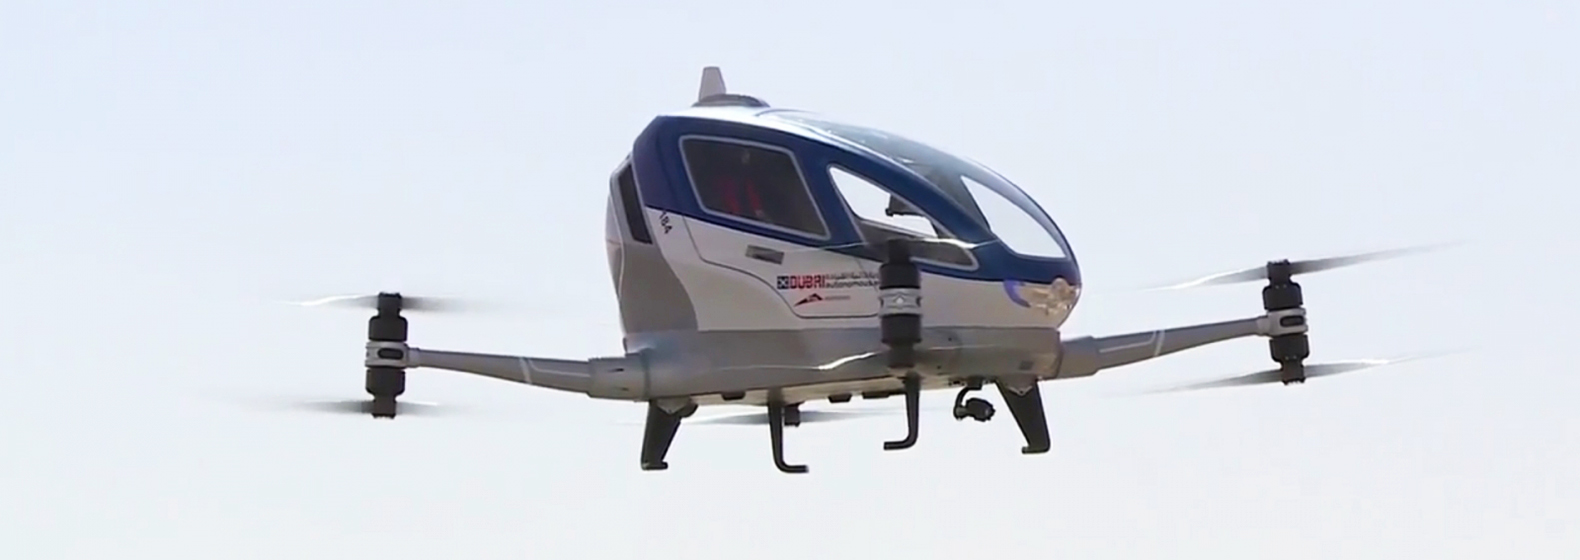 Dubai plans to launch autonomous flying drone taxis by mid-2017